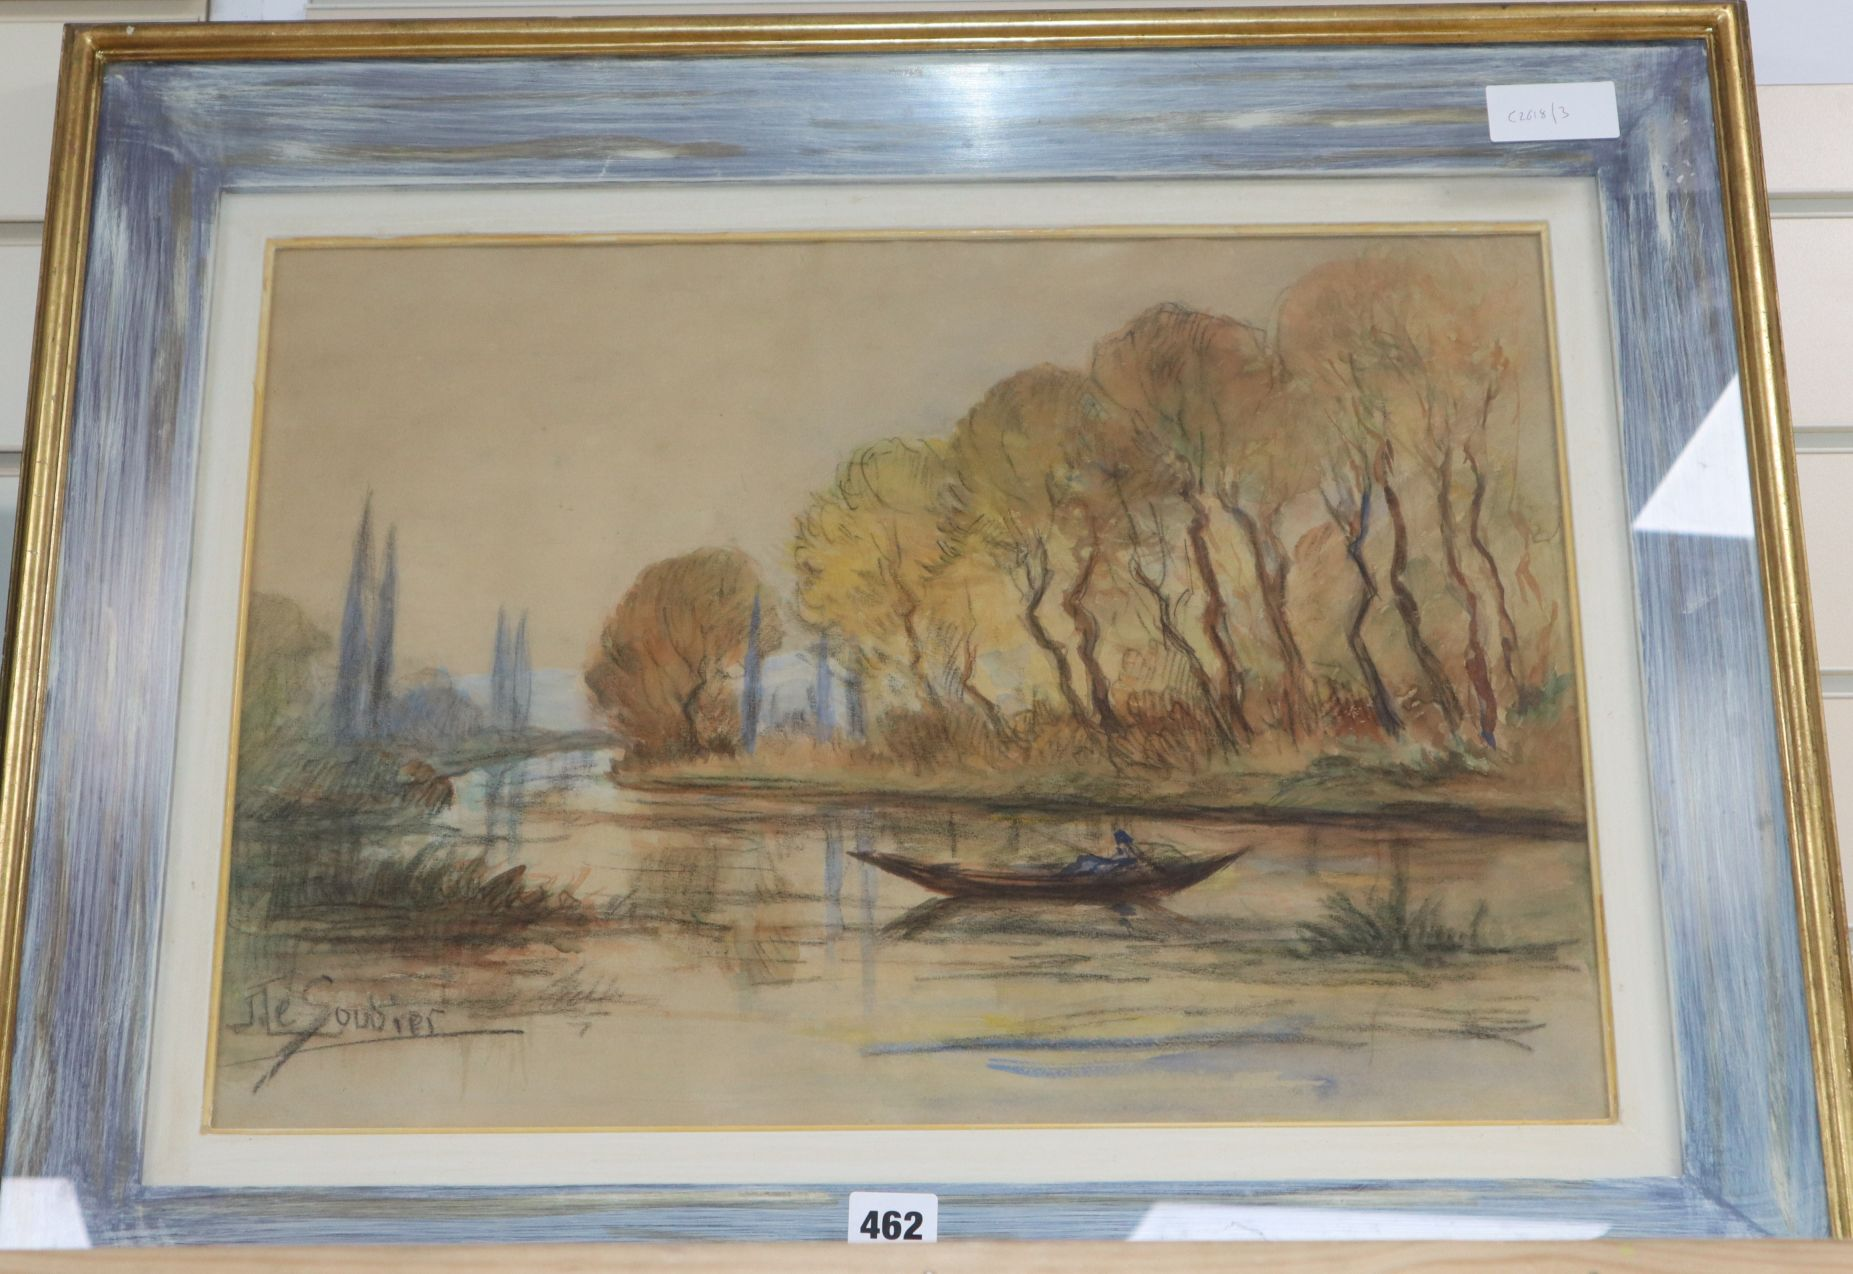 Lot 462 - J. Le Goudier, watercolour and charcoal, River landscape, signed, 35 x 50cm